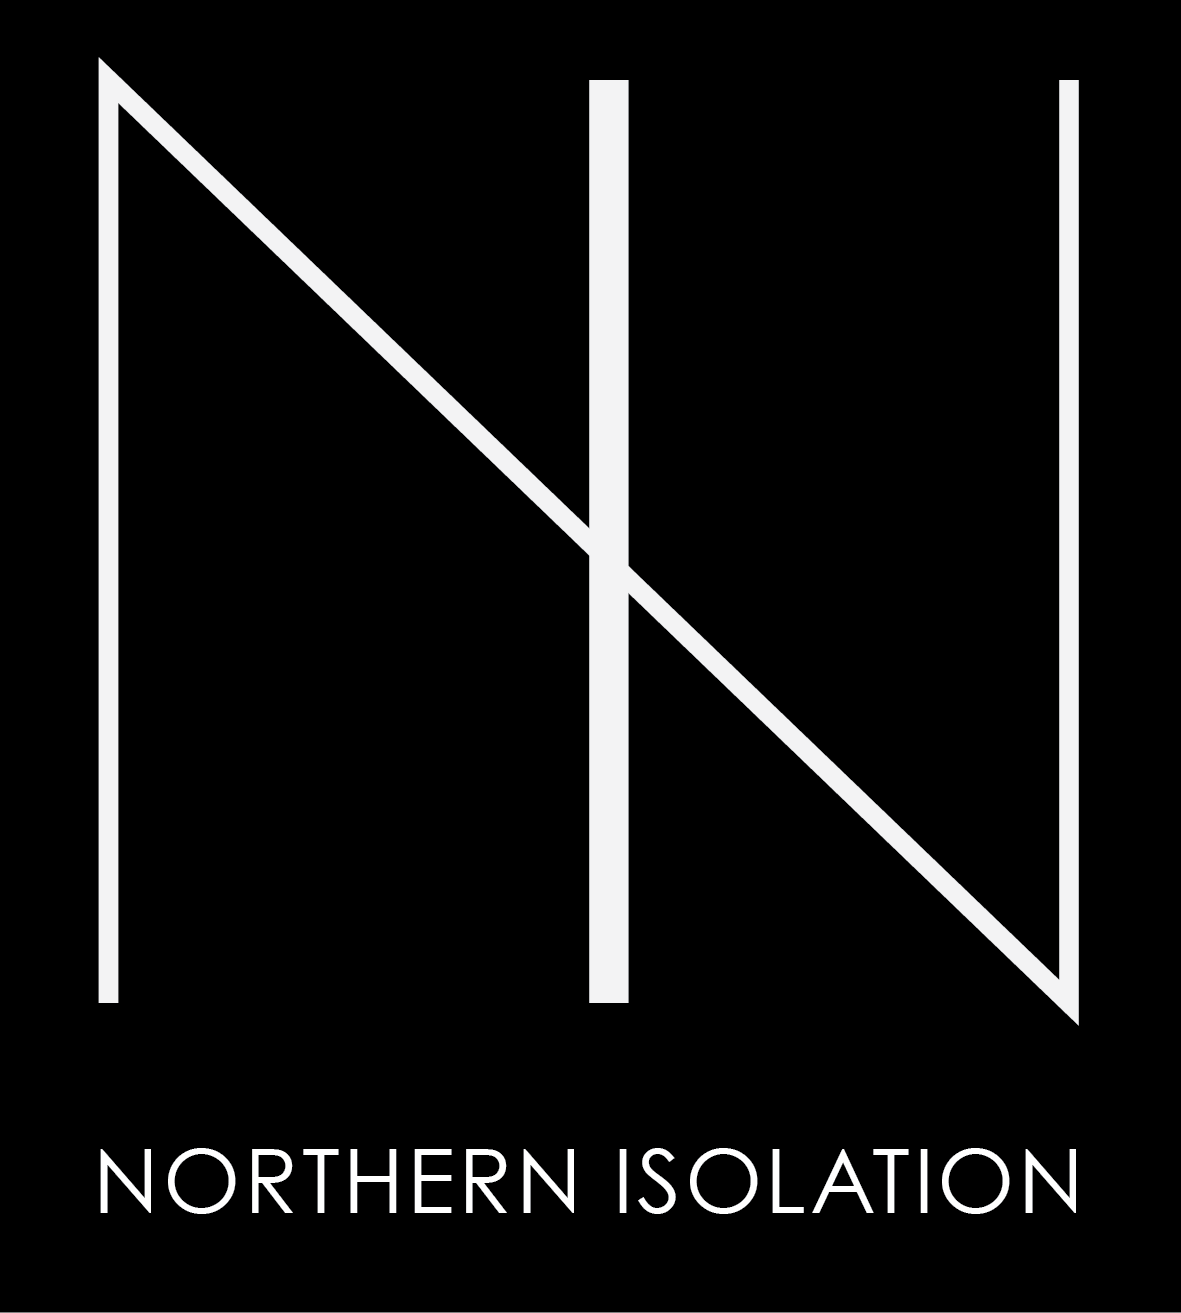 Northern Isolation